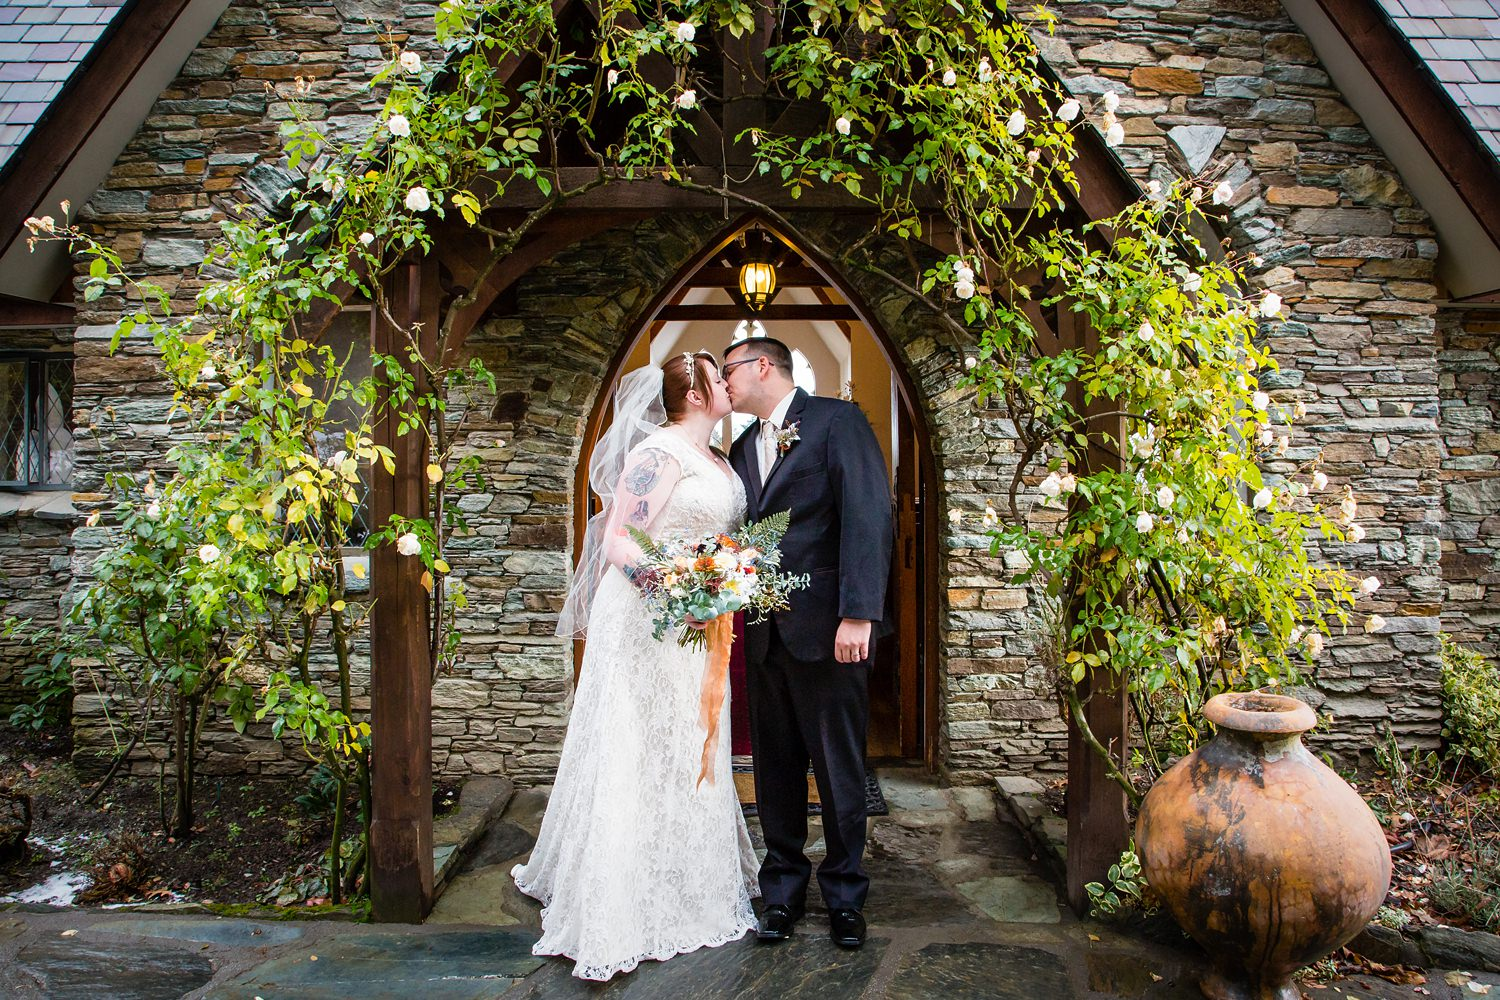 Wanaka Winter Wedding | Mountain wedding | Photography by Ruth Fluidphoto